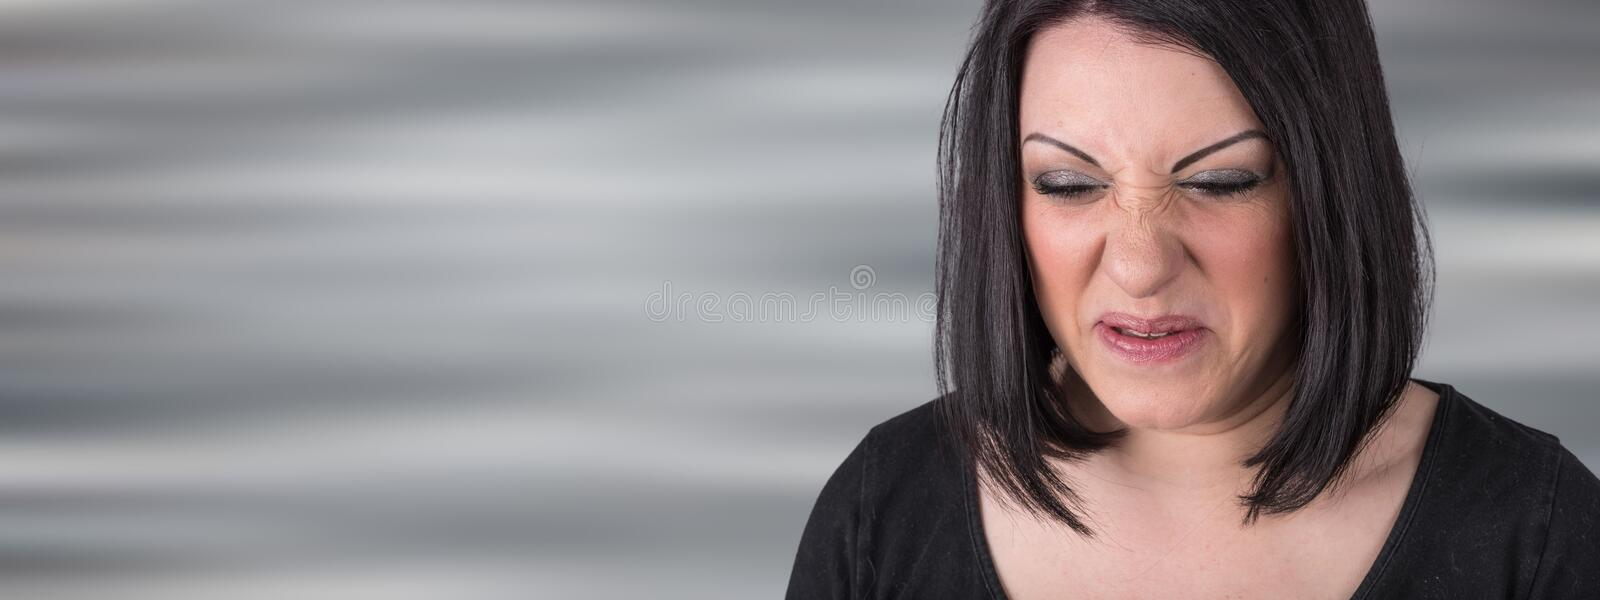 Young woman with an expression of disgust stock photography